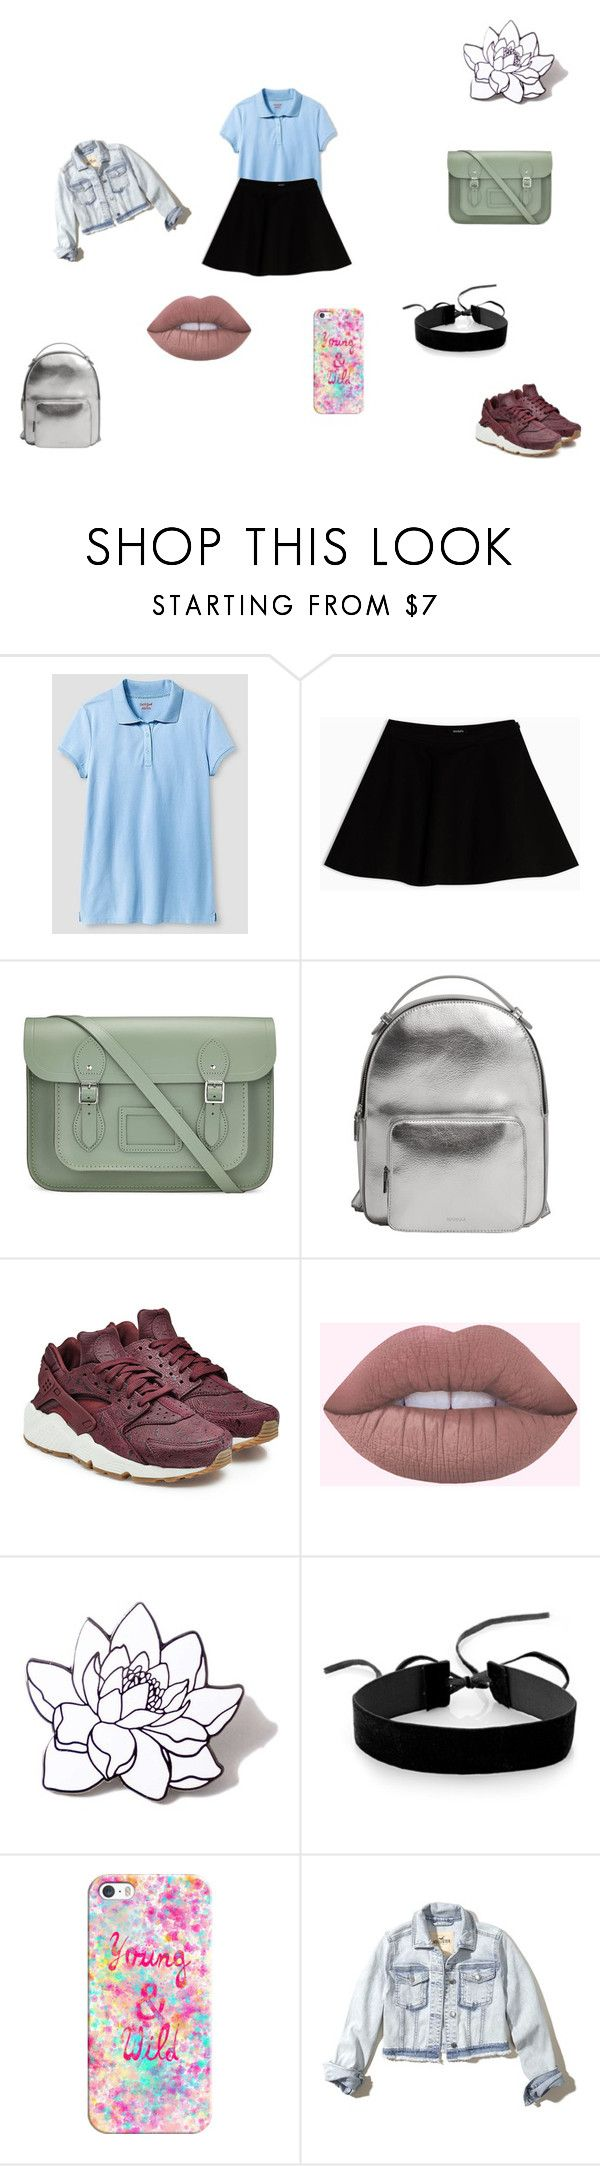 """schooll!!!!!!!!"" by queeniya ❤ liked on Polyvore featuring Cat & Jack, Max&Co., The Cambridge Satchel Company, MANGO, NIKE, PINTRILL, Simons, Casetify and Hollister Co."